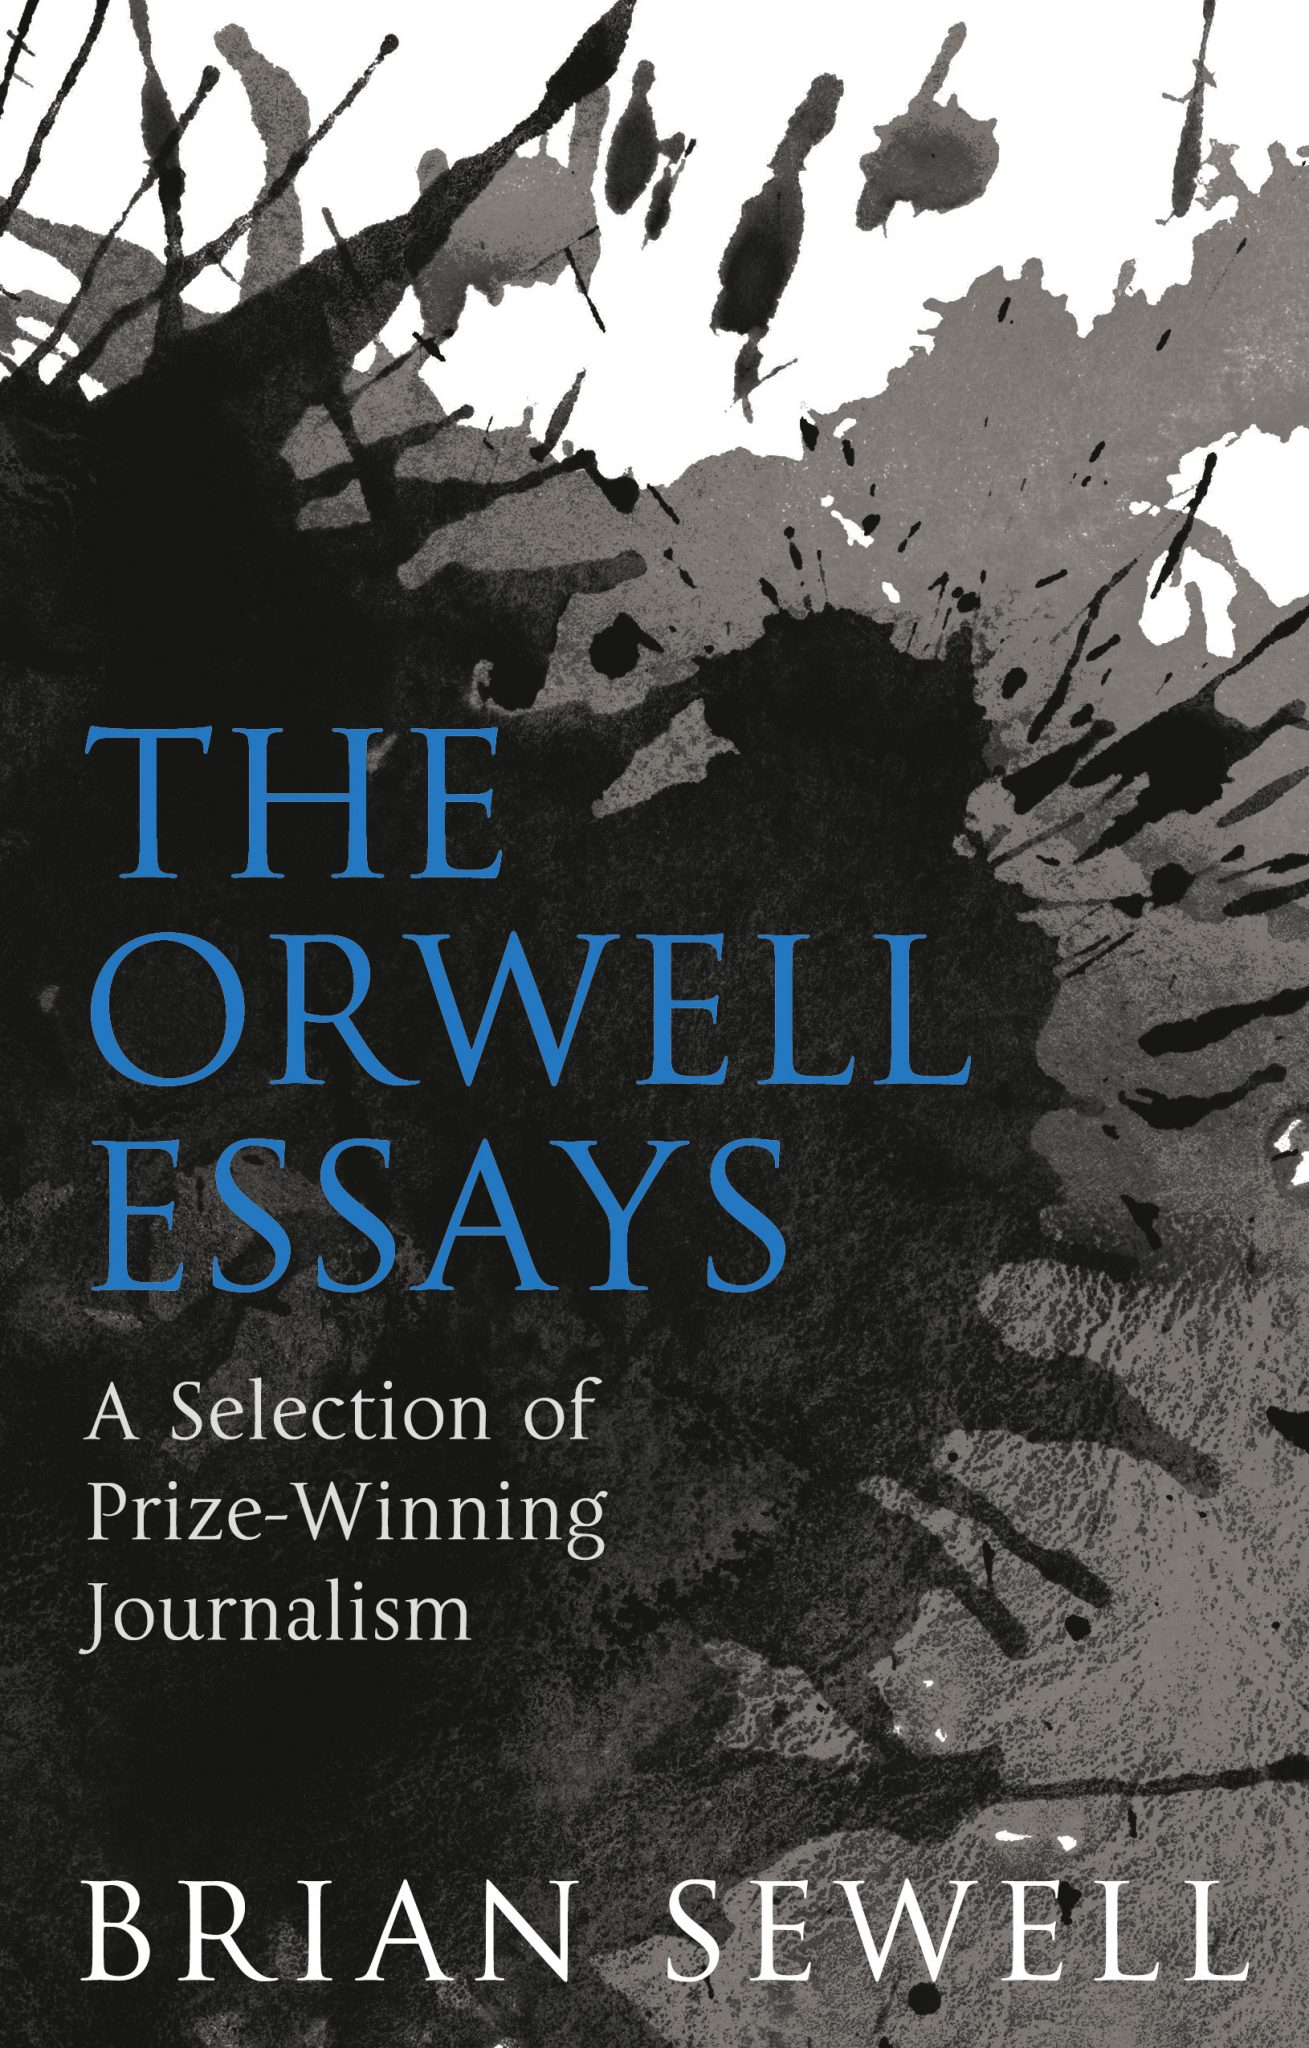 the orwell essays a collection of prize winning journalism the orwell essays